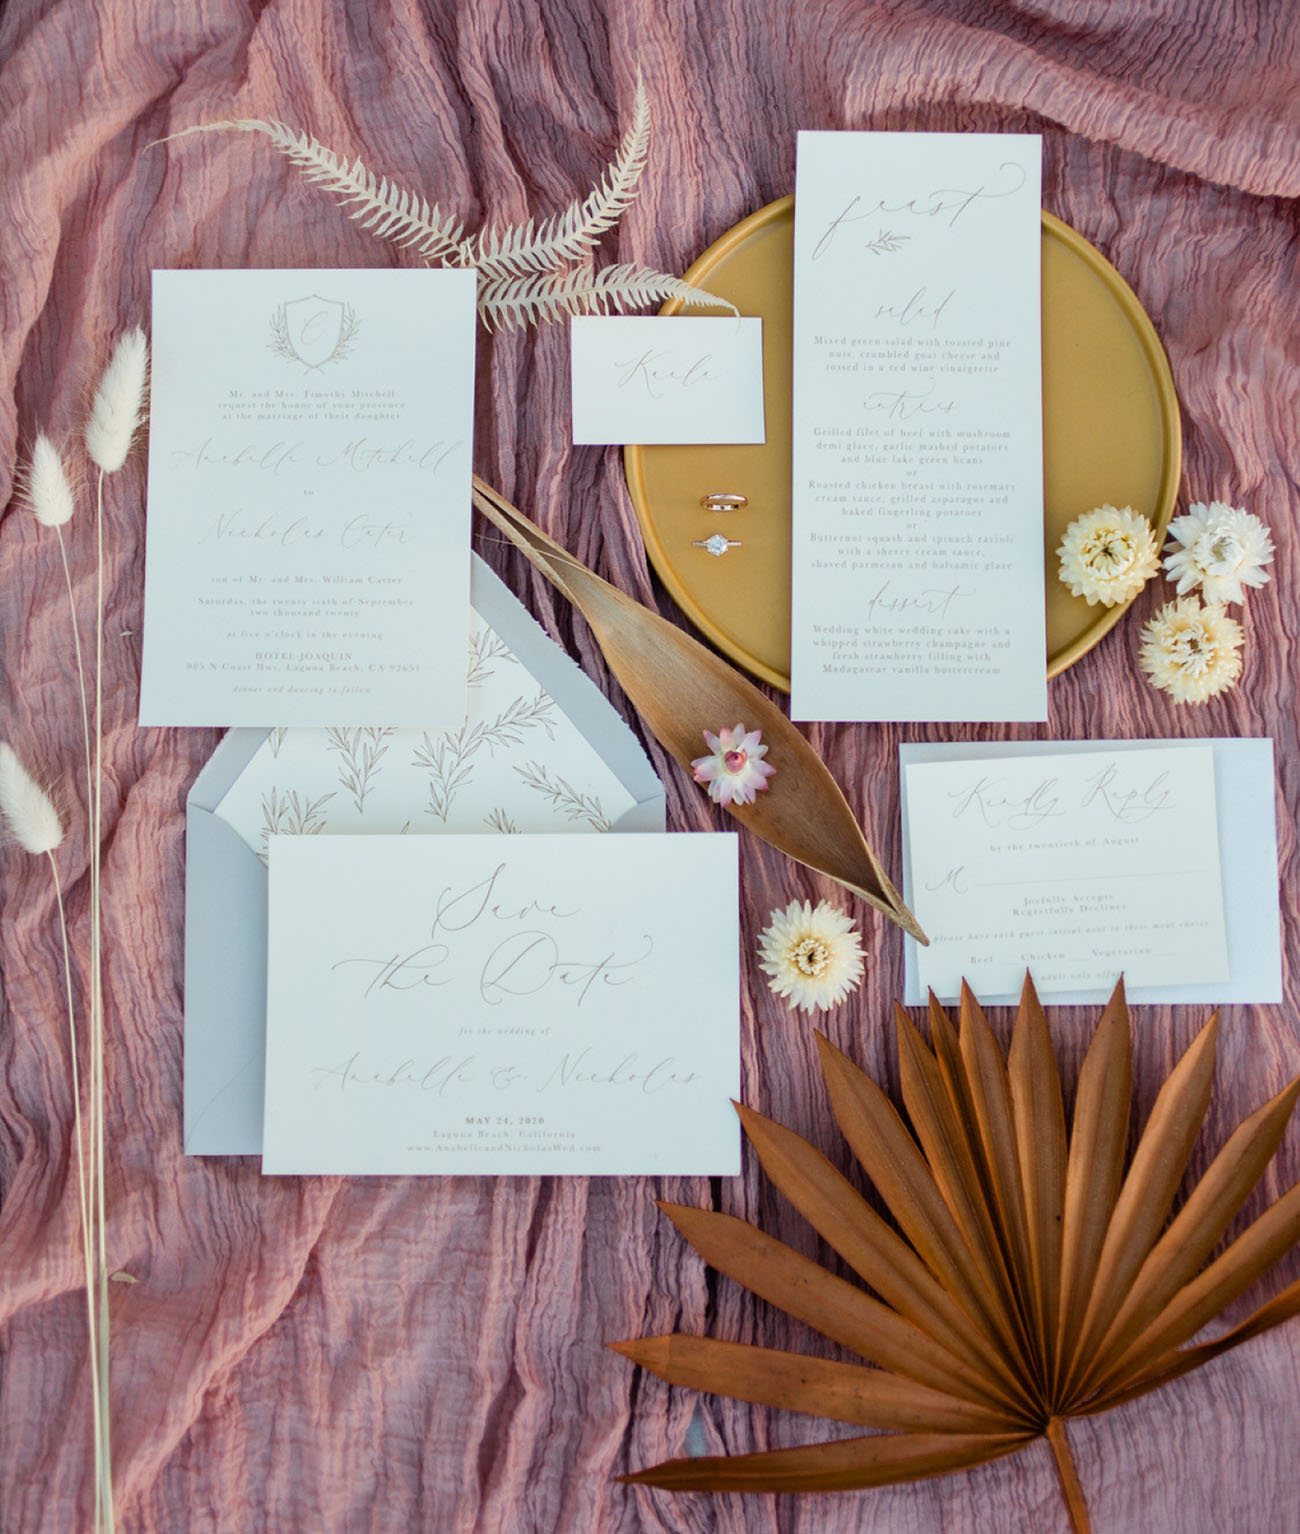 The wedding invitation suite was neutral, with calligraphy and perfectly featured breezy vibes of the day